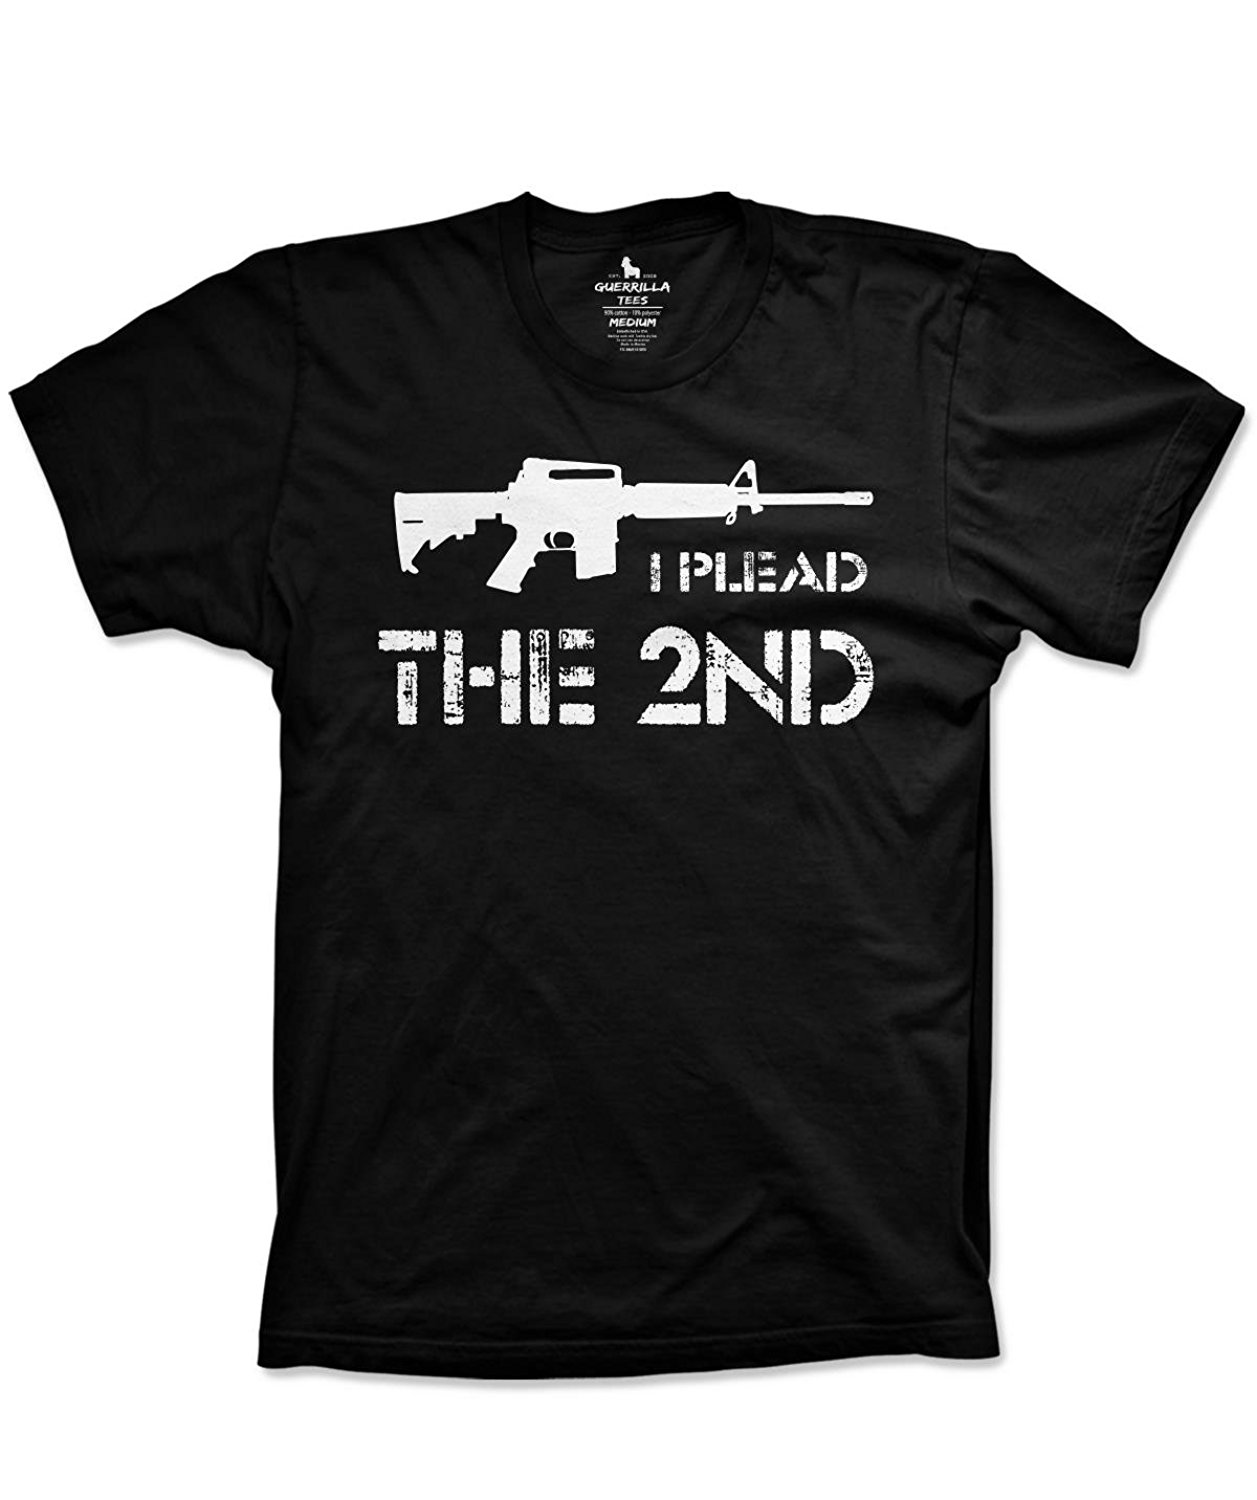 2019 Hot sale Fashion Plead the second <font><b>tshirt</b></font> <font><b>funny</b></font> <font><b>tshirt</b></font> NRA shirt right to bear arms Tee shirt image